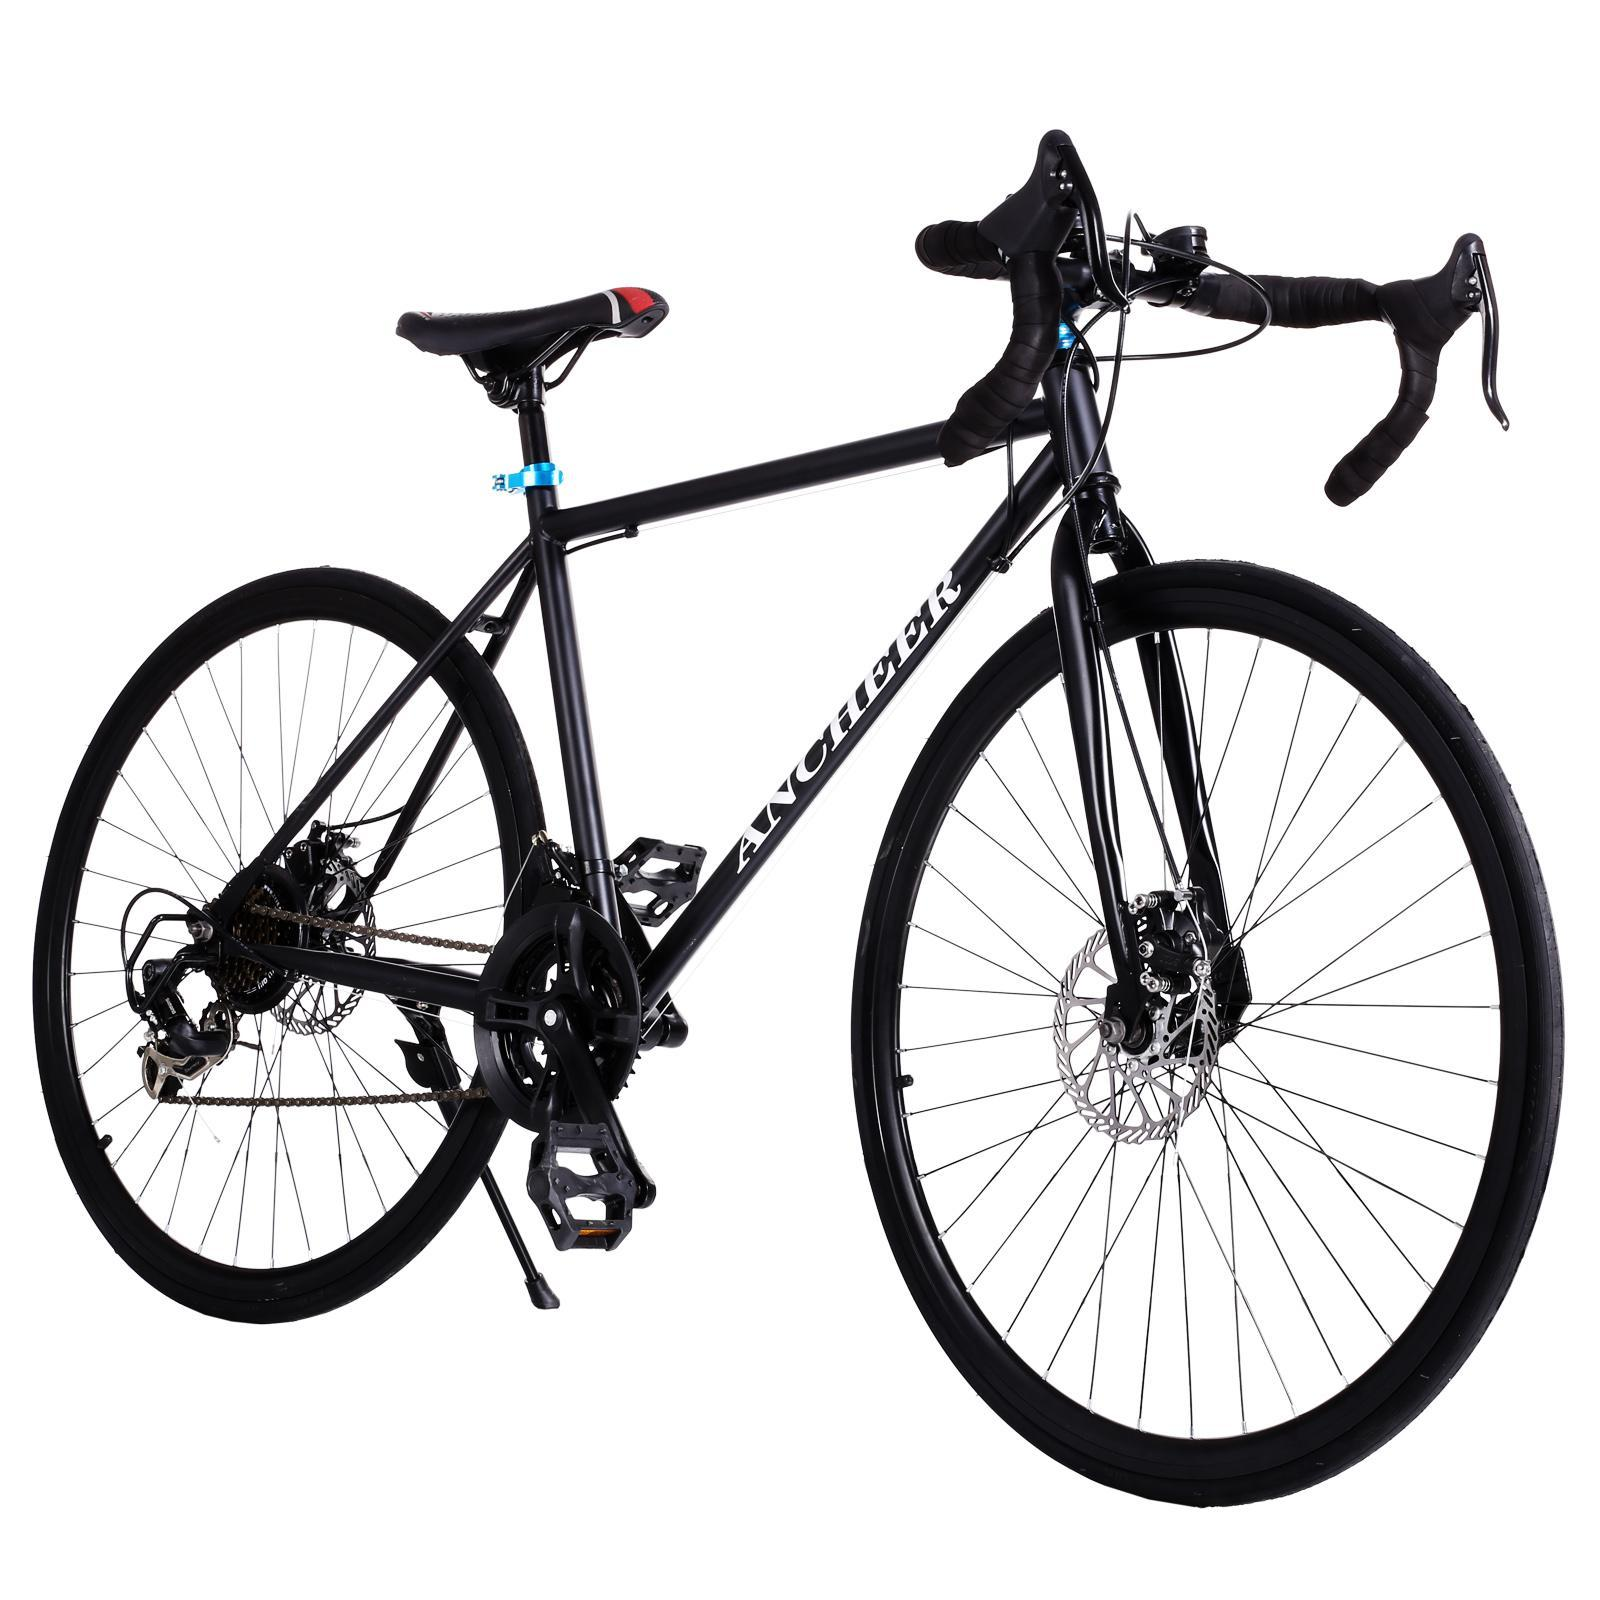 Dailydeal Adult Teen Racing Bike, Fashion 700C Aluminum 21 Speed Road/Commuter Bike Racing Bicycle Black